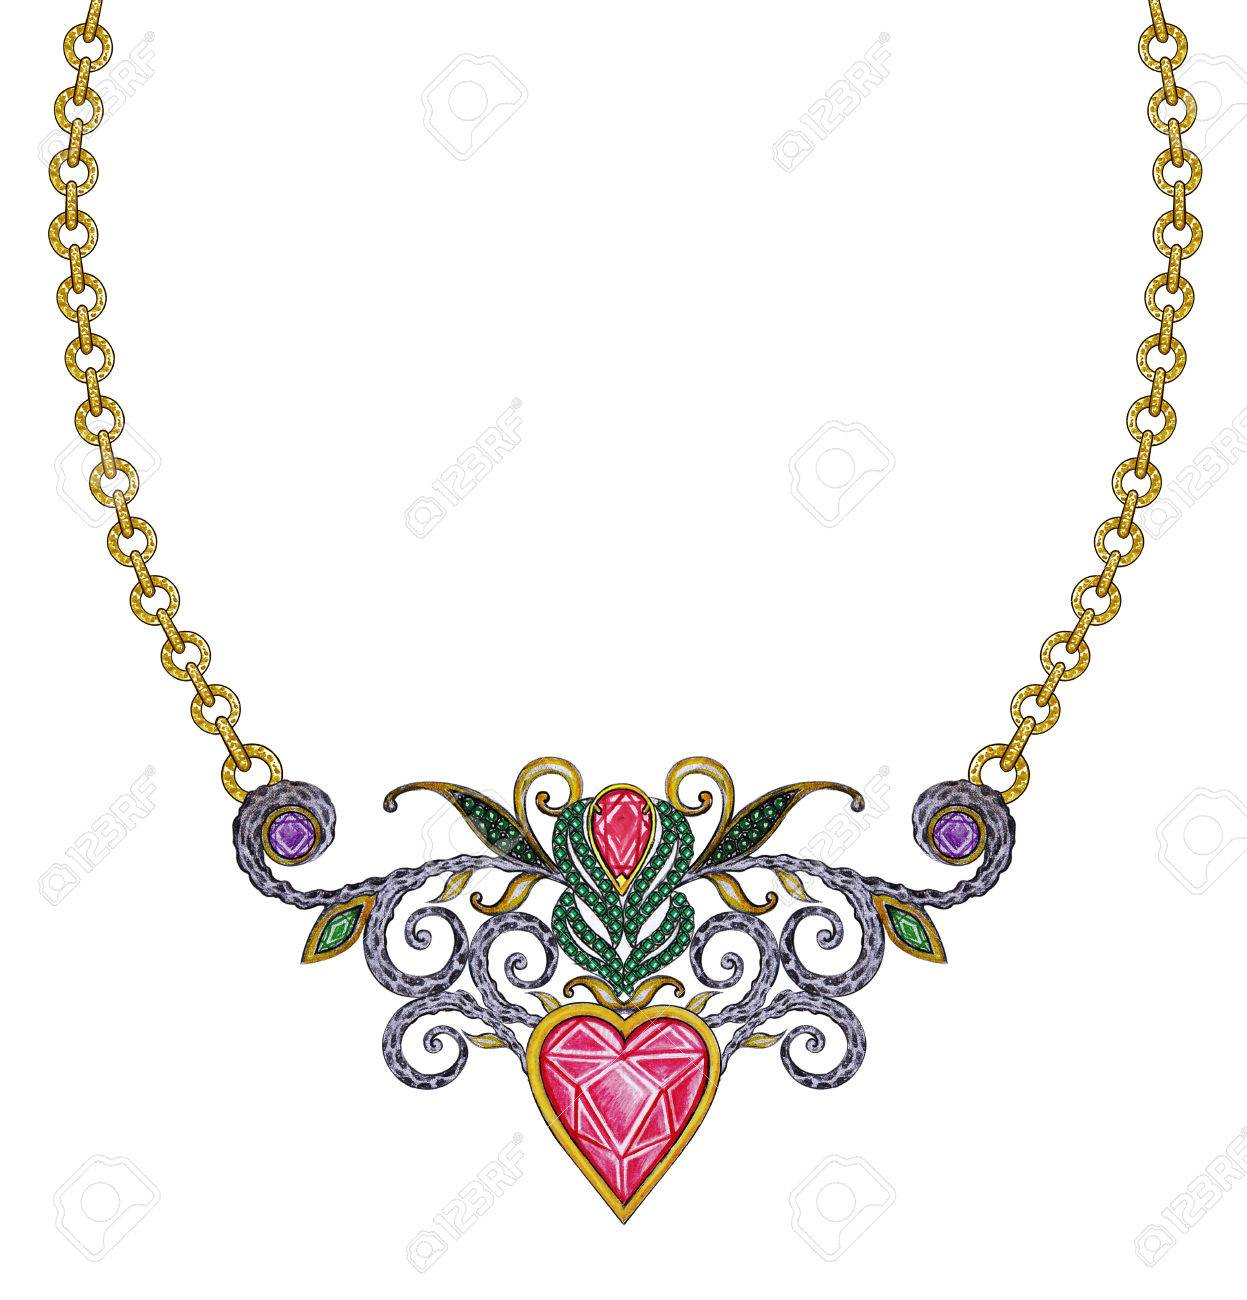 1247x1300 Jewelry Design Vintage Art Mix Heart Necklace. Hand Pencil Drawing